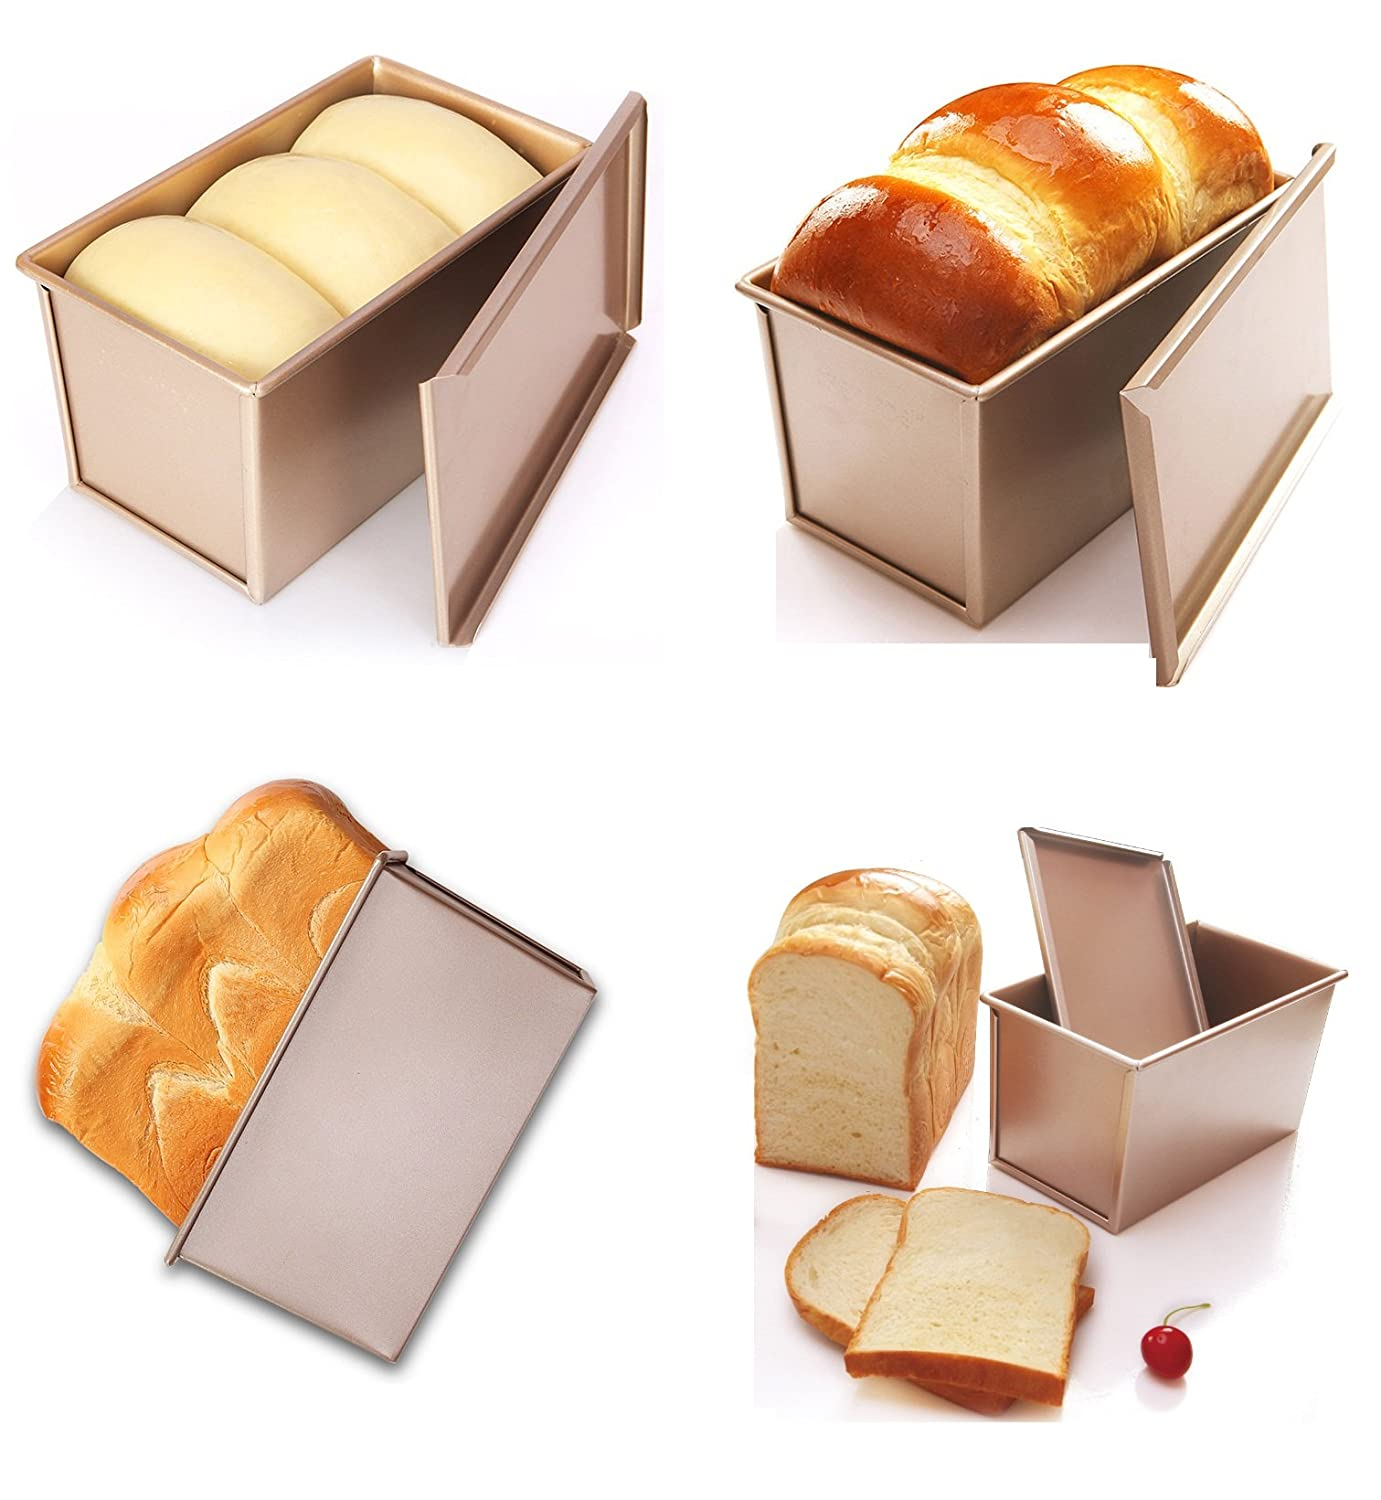 BREAD LOAF TIN PAN BOX 1200g PULLMAN SANDWICH LOAF WITH LID HOME BAKING FRESH BREAD ALUMINIUM NEW FROM CFU UK